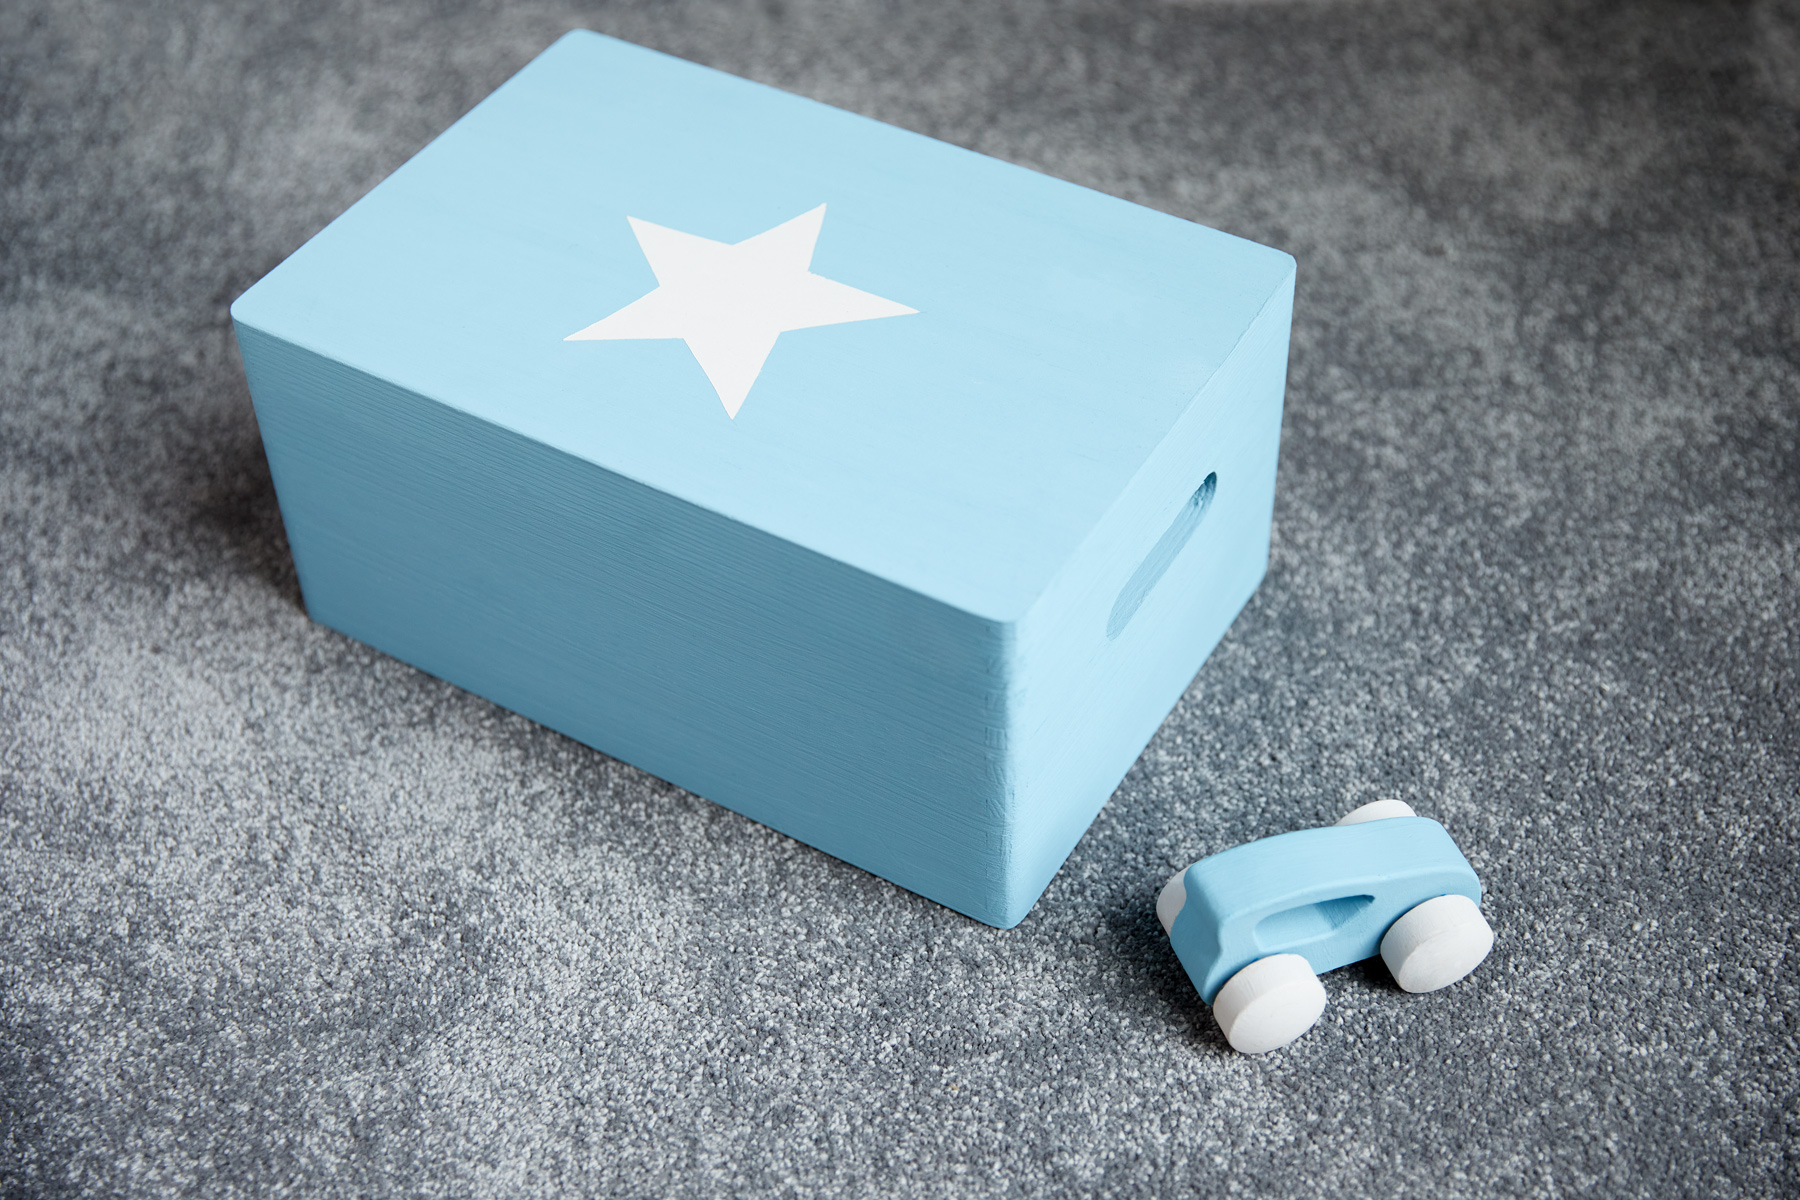 Eco Chic in Polka Dot blue is perfect for painting children's furniture and toys!